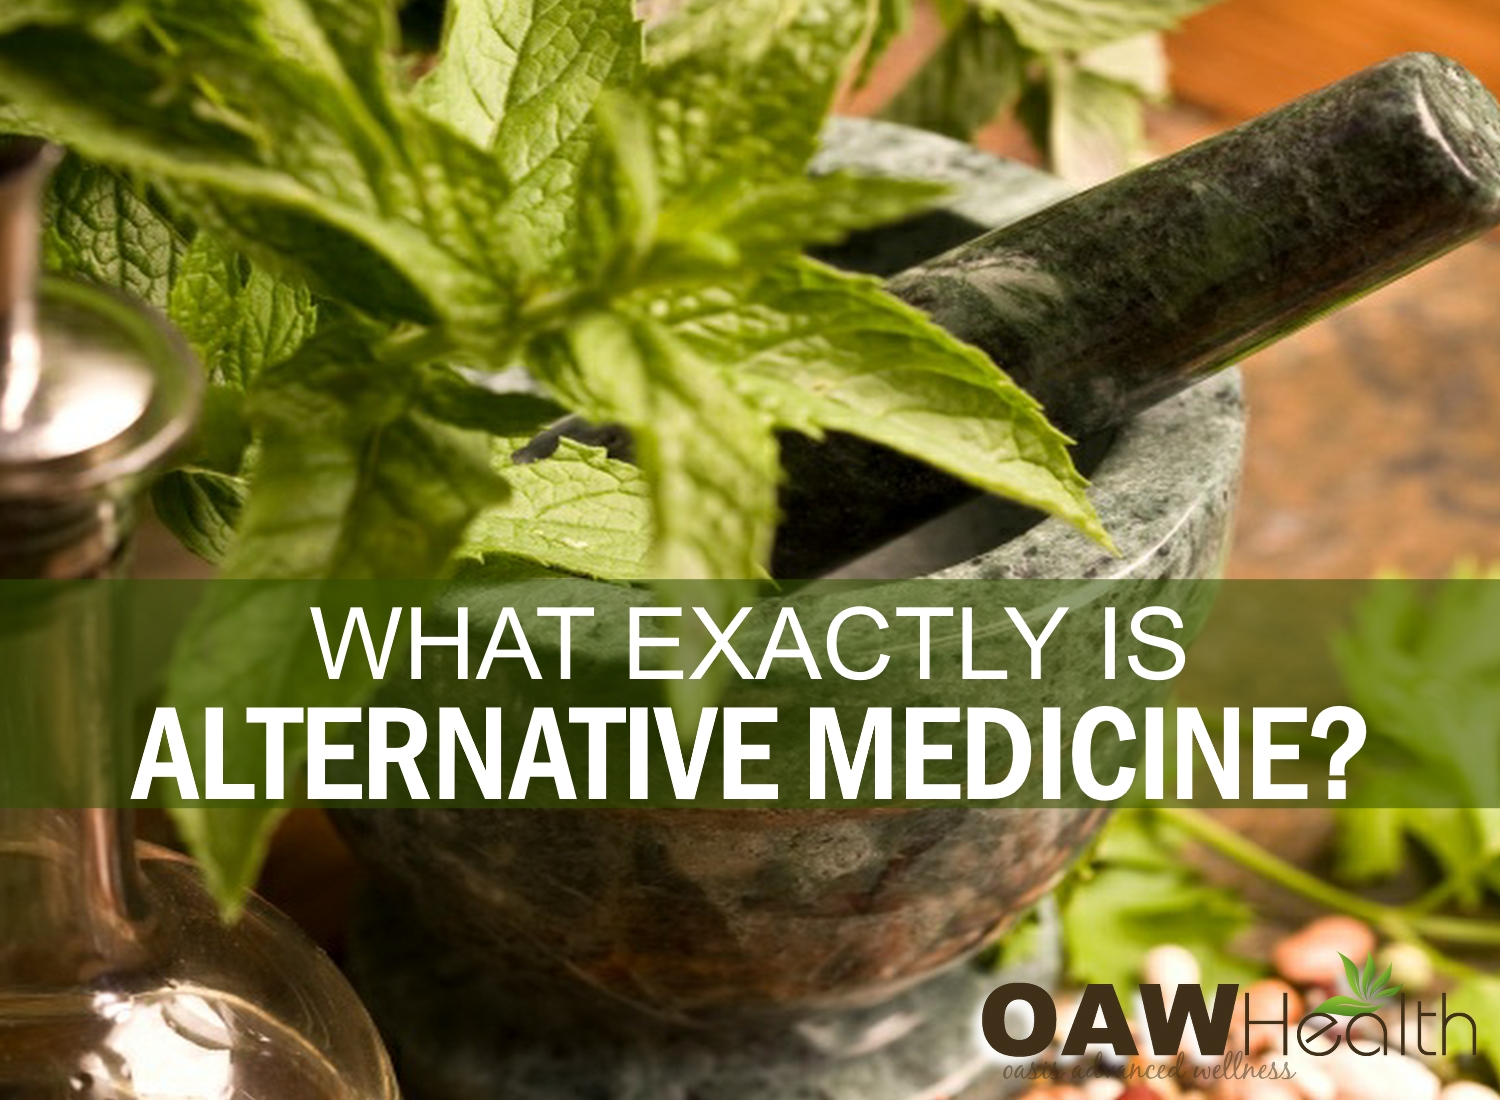 What Exactly is Alternative Medicine?